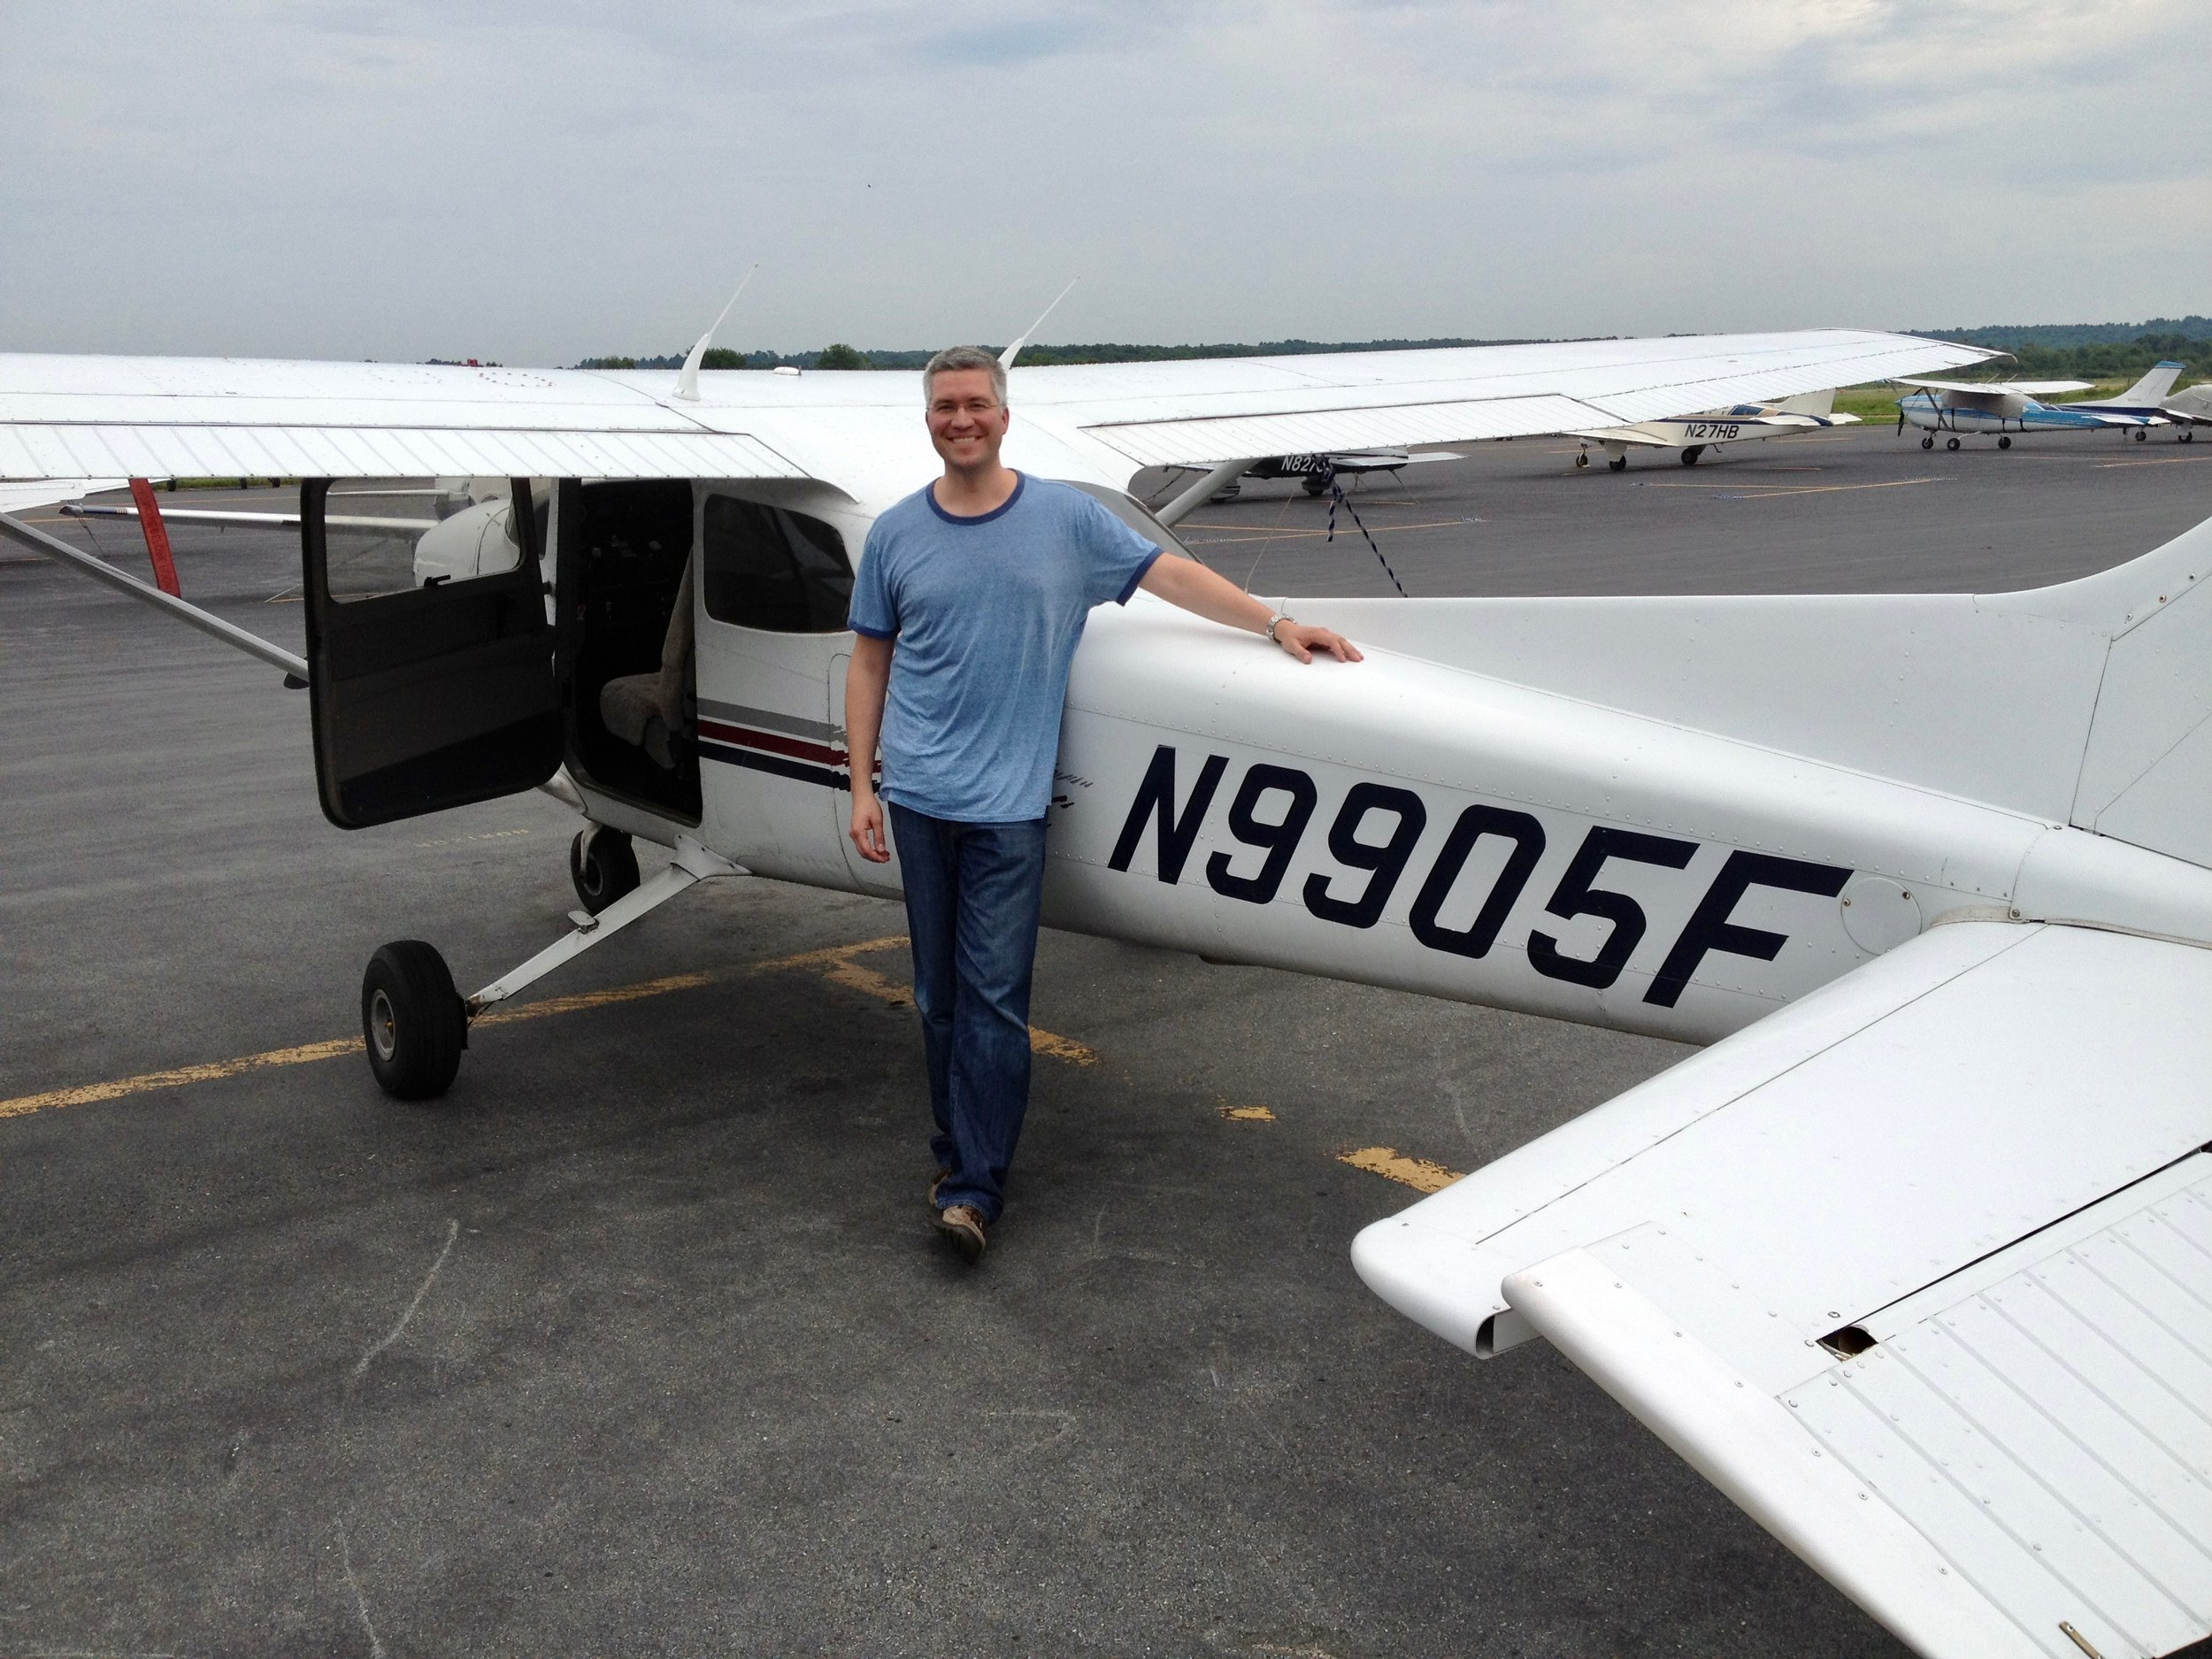 First Solo, July 7, 2012, Norwood, MA (KOWD)